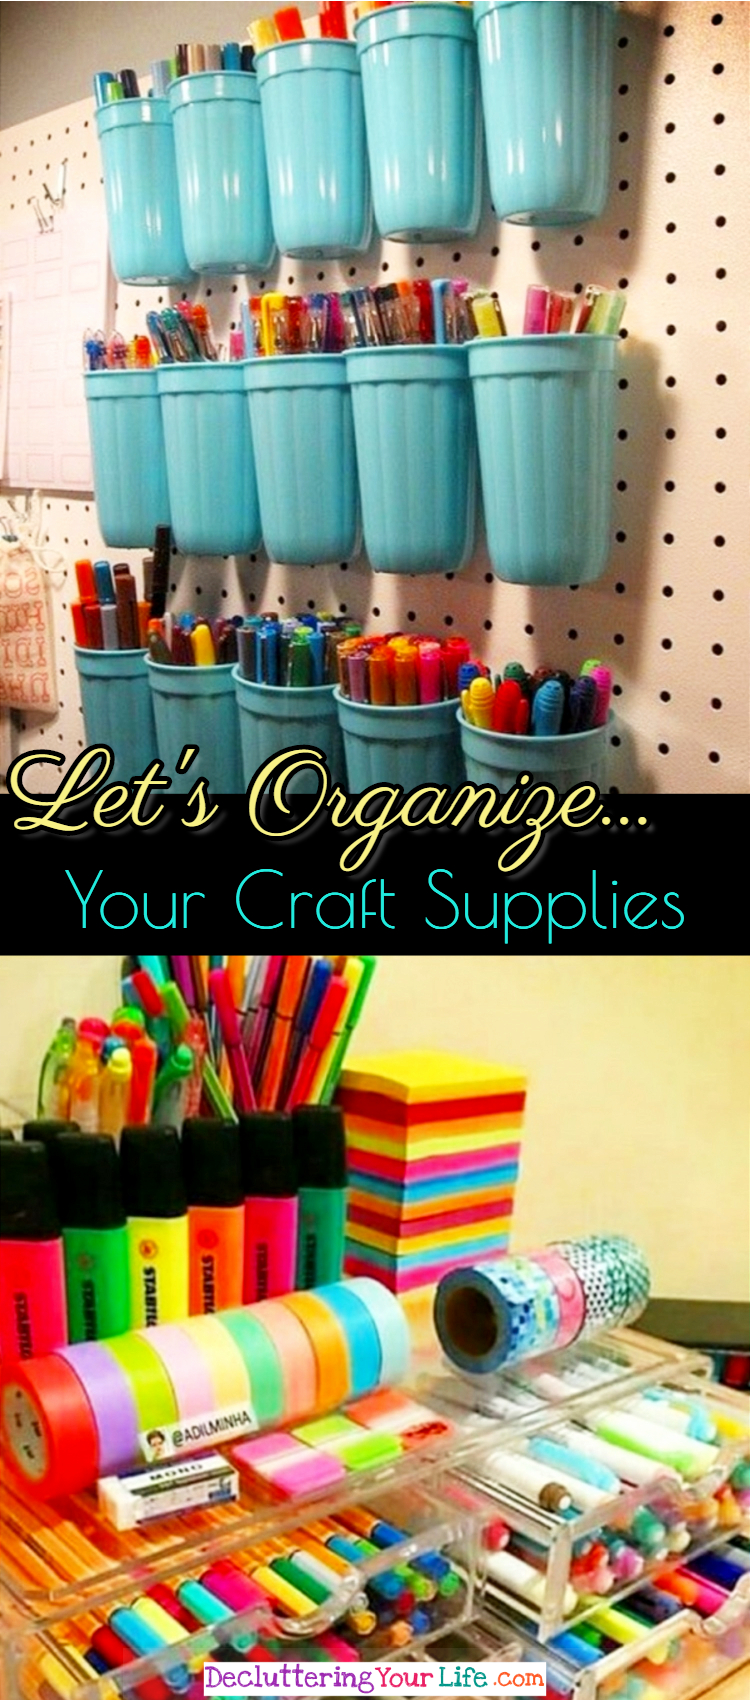 Best DIY Craft Room Organizing Ideas on Pinterest - easy, unique and unexpected ideas for organizing your craft supplies in your craftroom